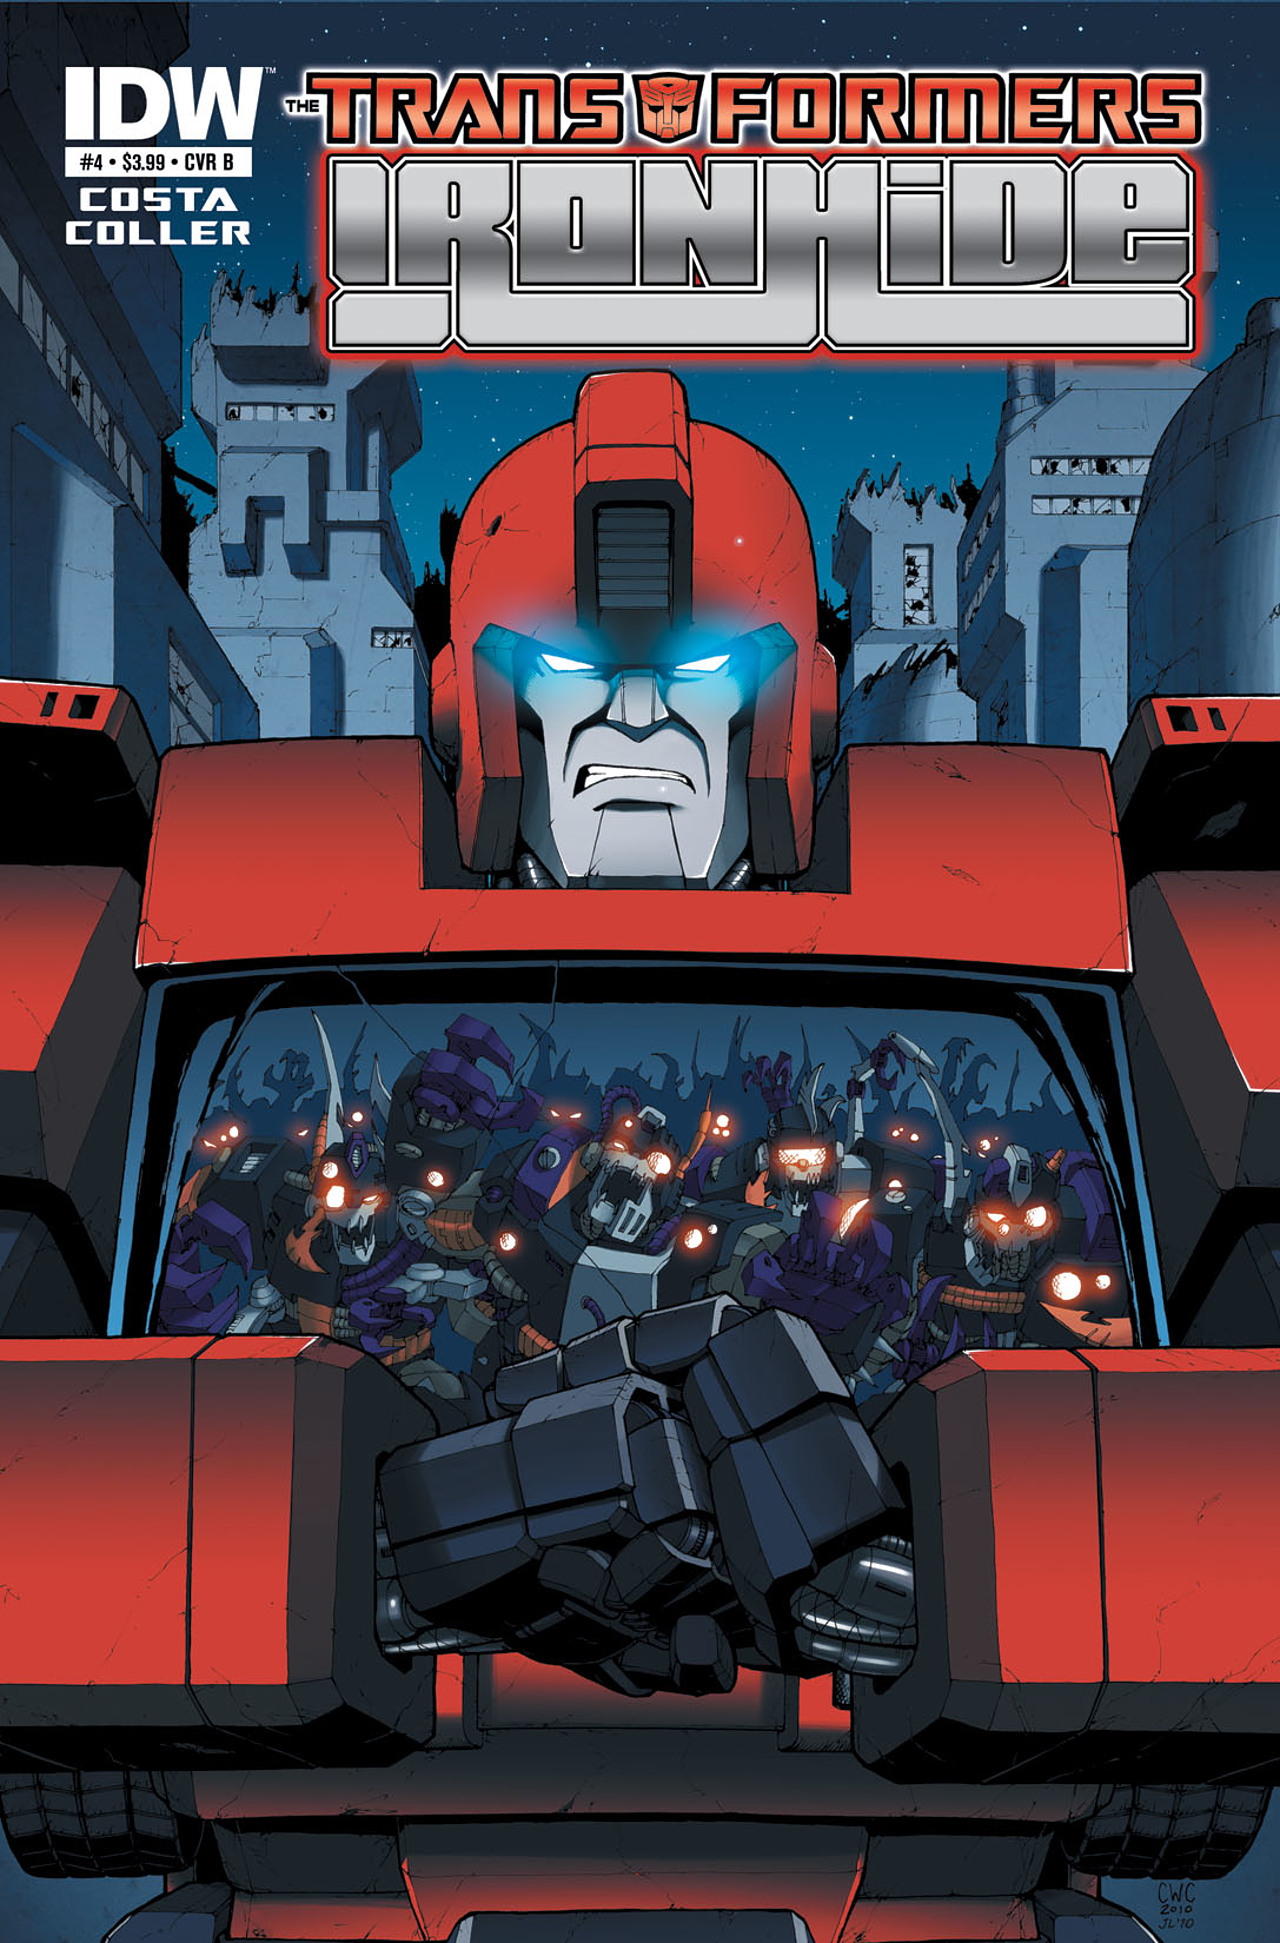 Read online The Transformers: Ironhide comic -  Issue #4 - 2